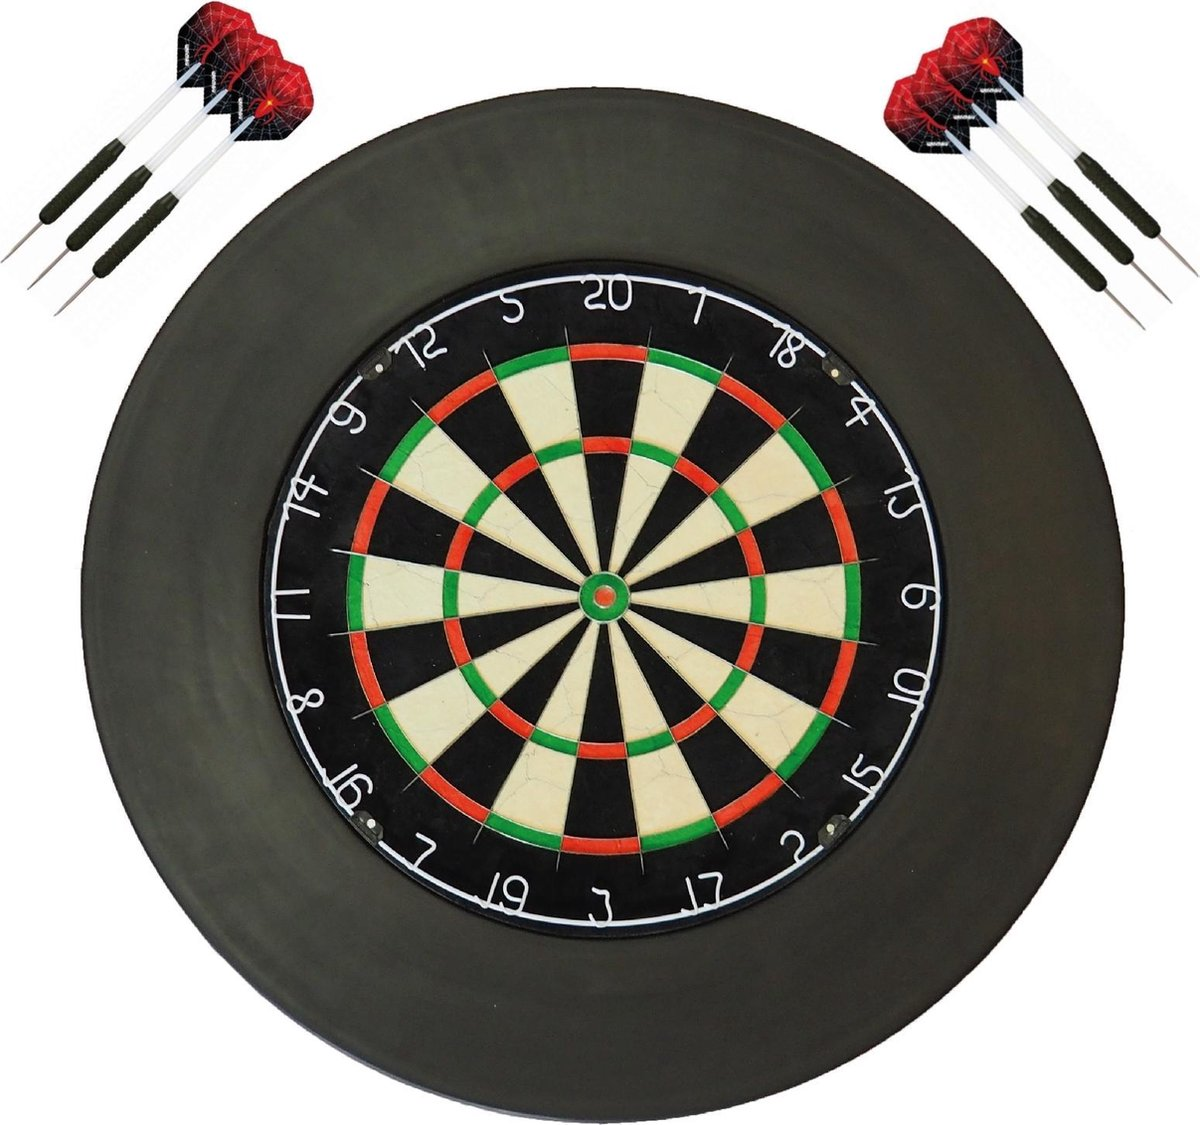 A-merk XQ - dartbord - (BEST getest) + surround ring zwart + 2 sets Dragon Spider - dartpijlen